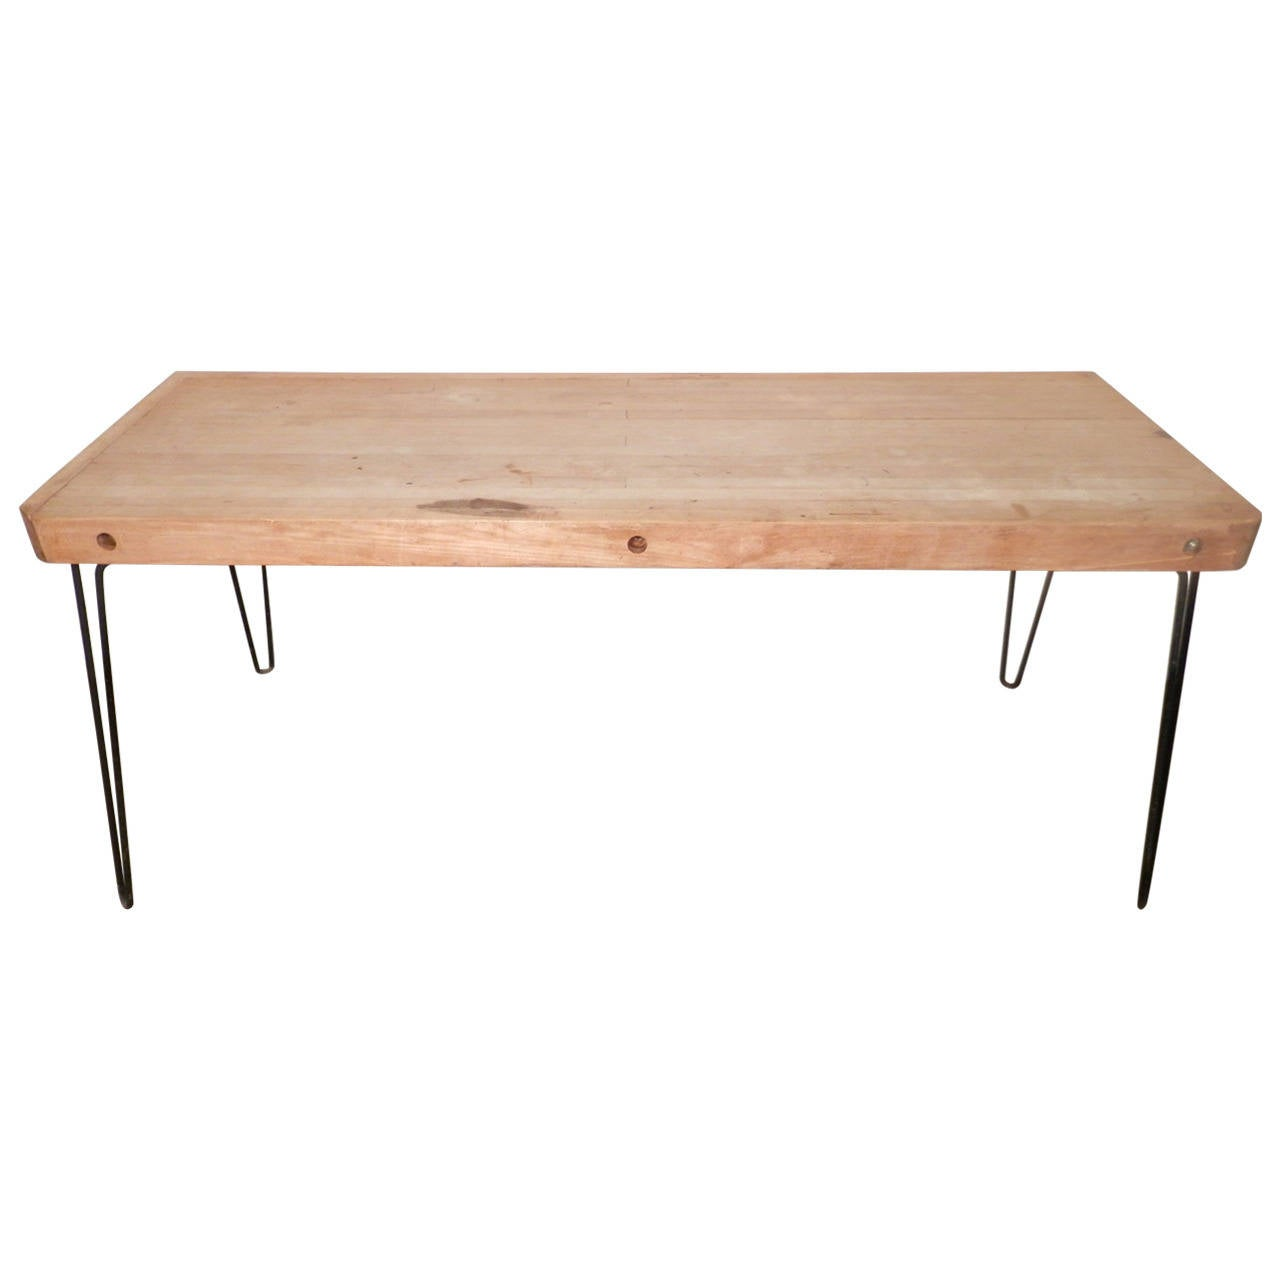 Large table w butcher block top at 1stdibs for The best dining room tables